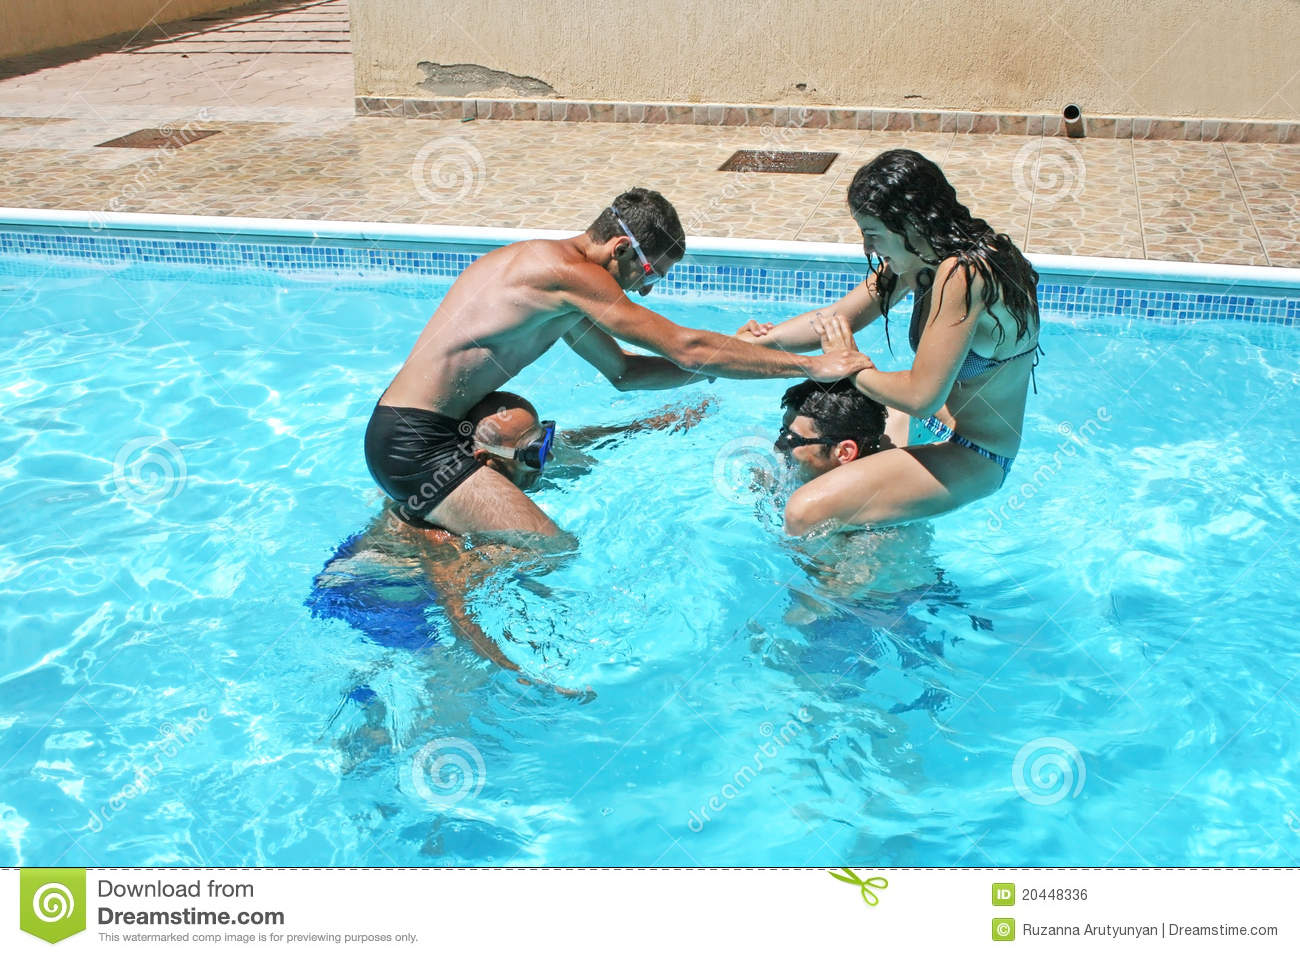 Piscina Hinchable 305 X 91 People In Swimming Pool Royalty Free Stock Image Image